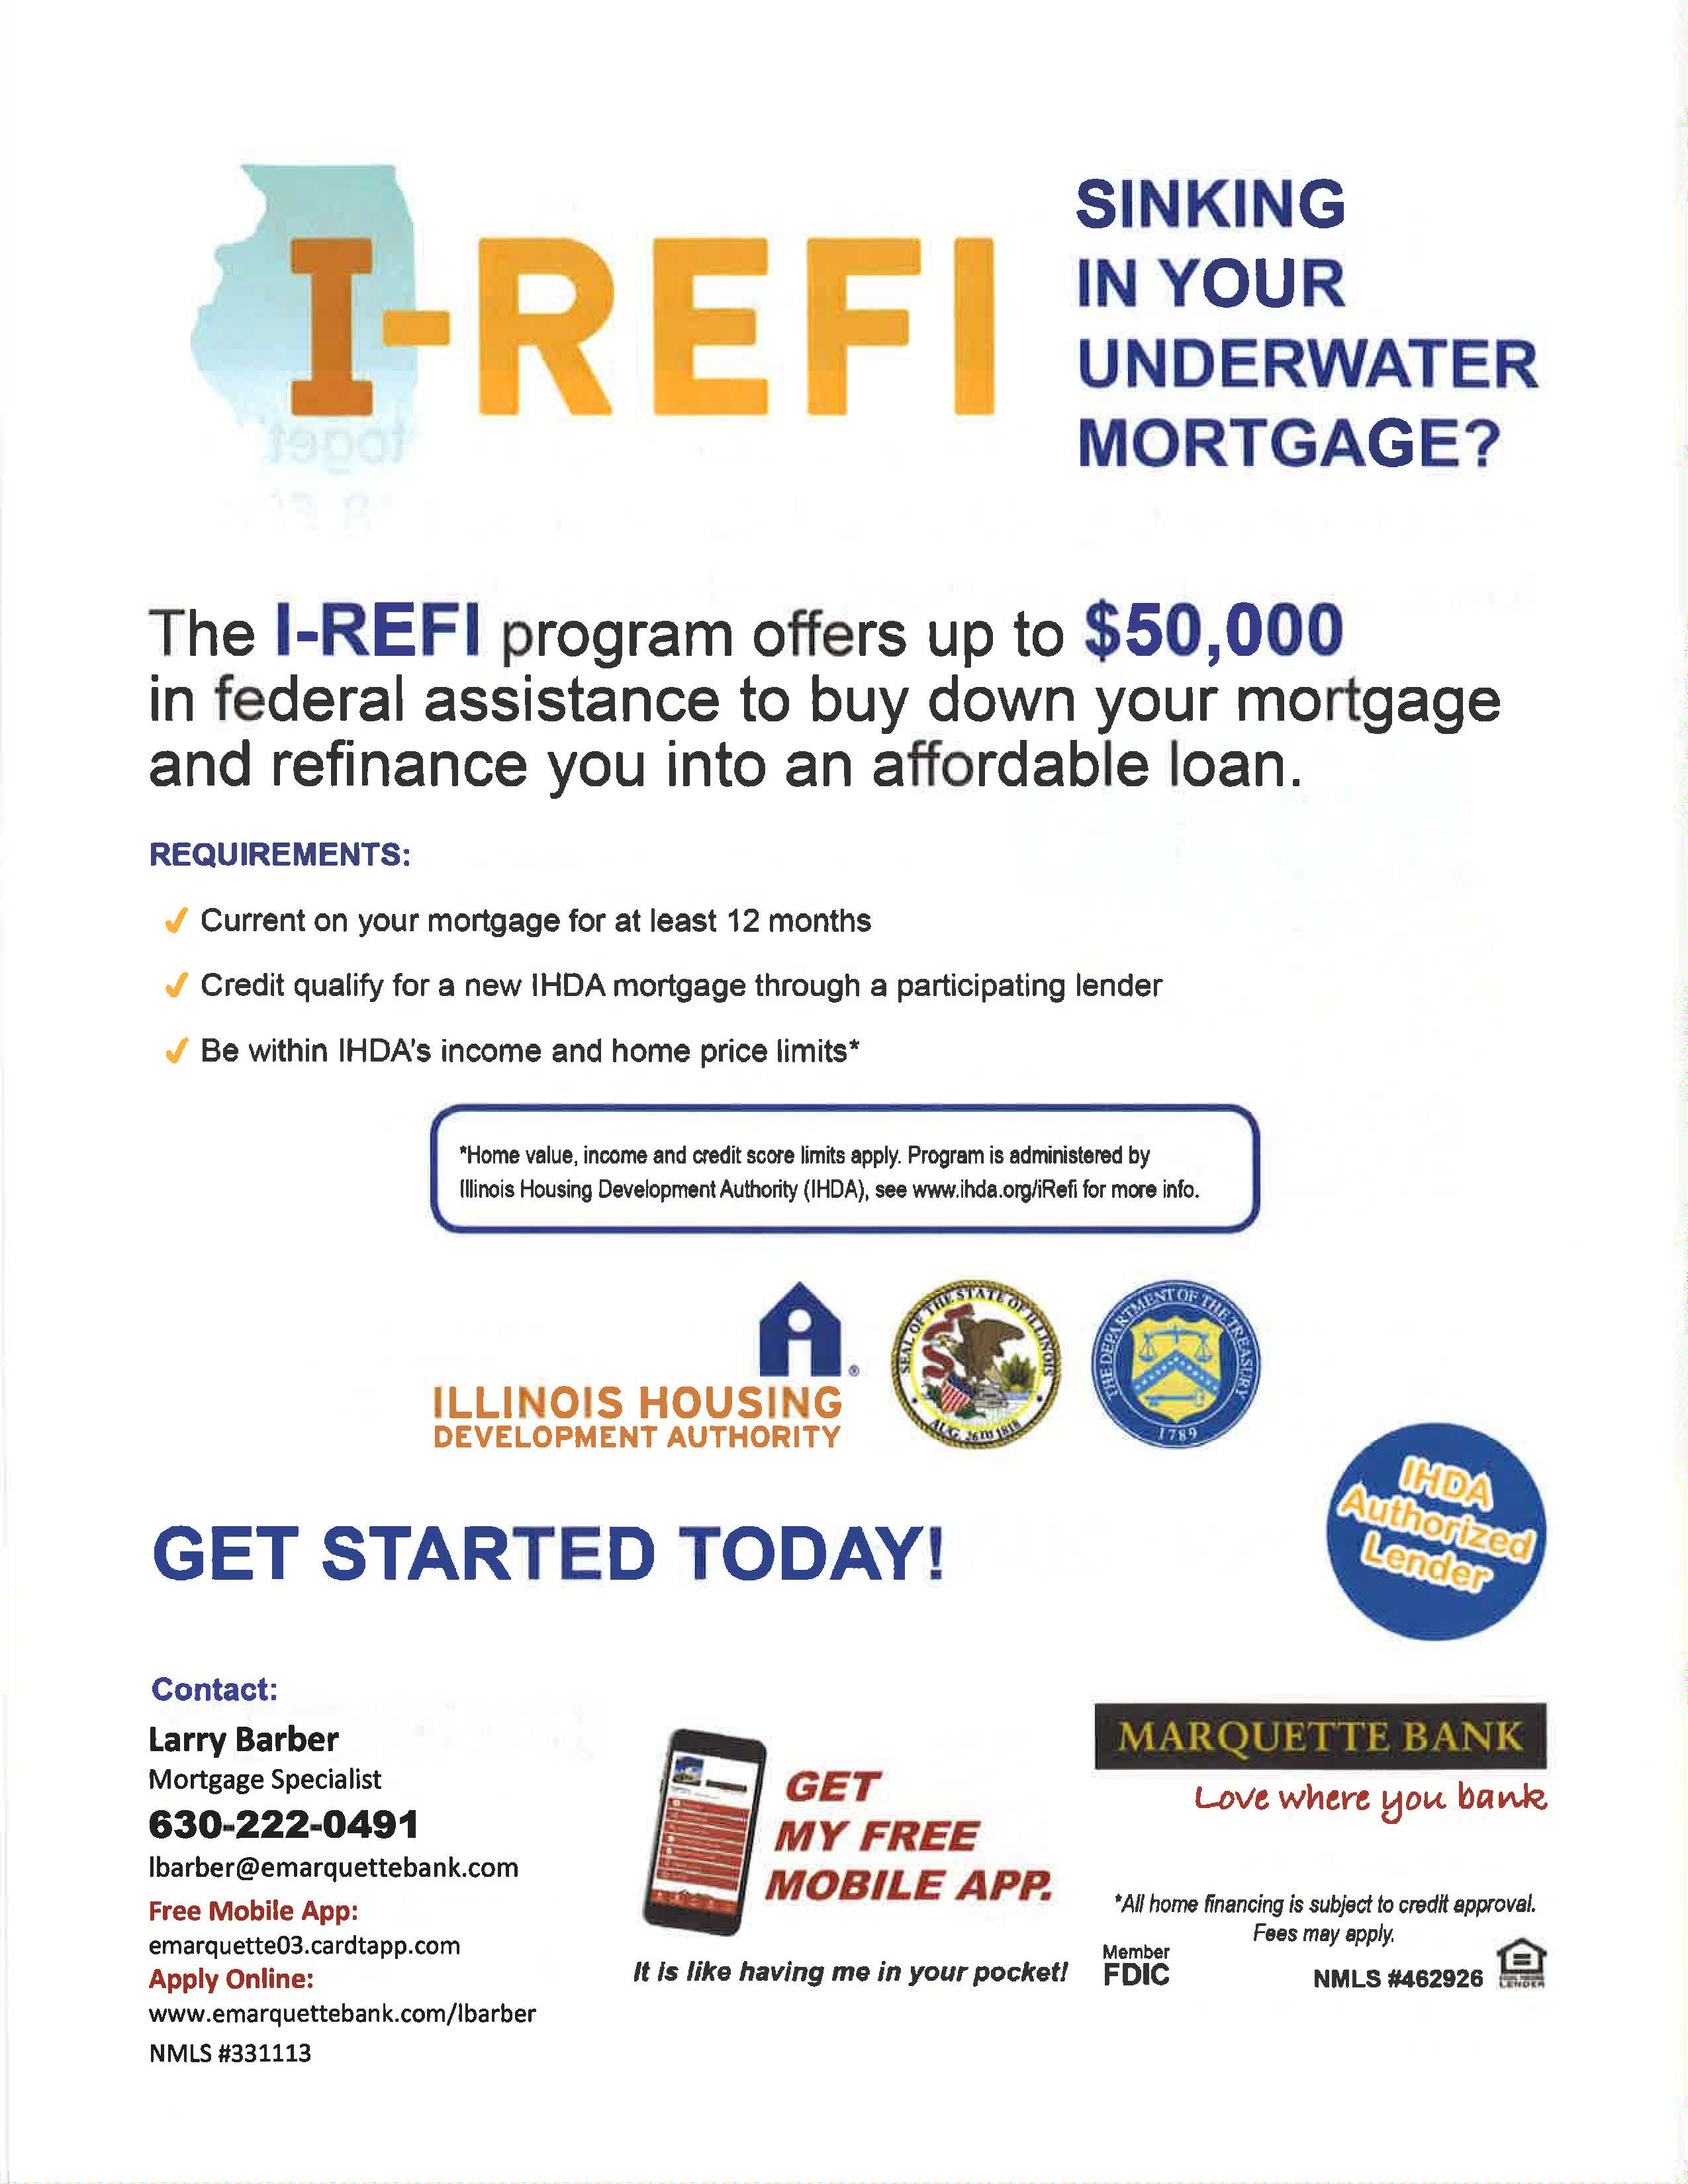 Marquette Bank mortgage refinance assistance program offers up to $50,000 in federal assistance